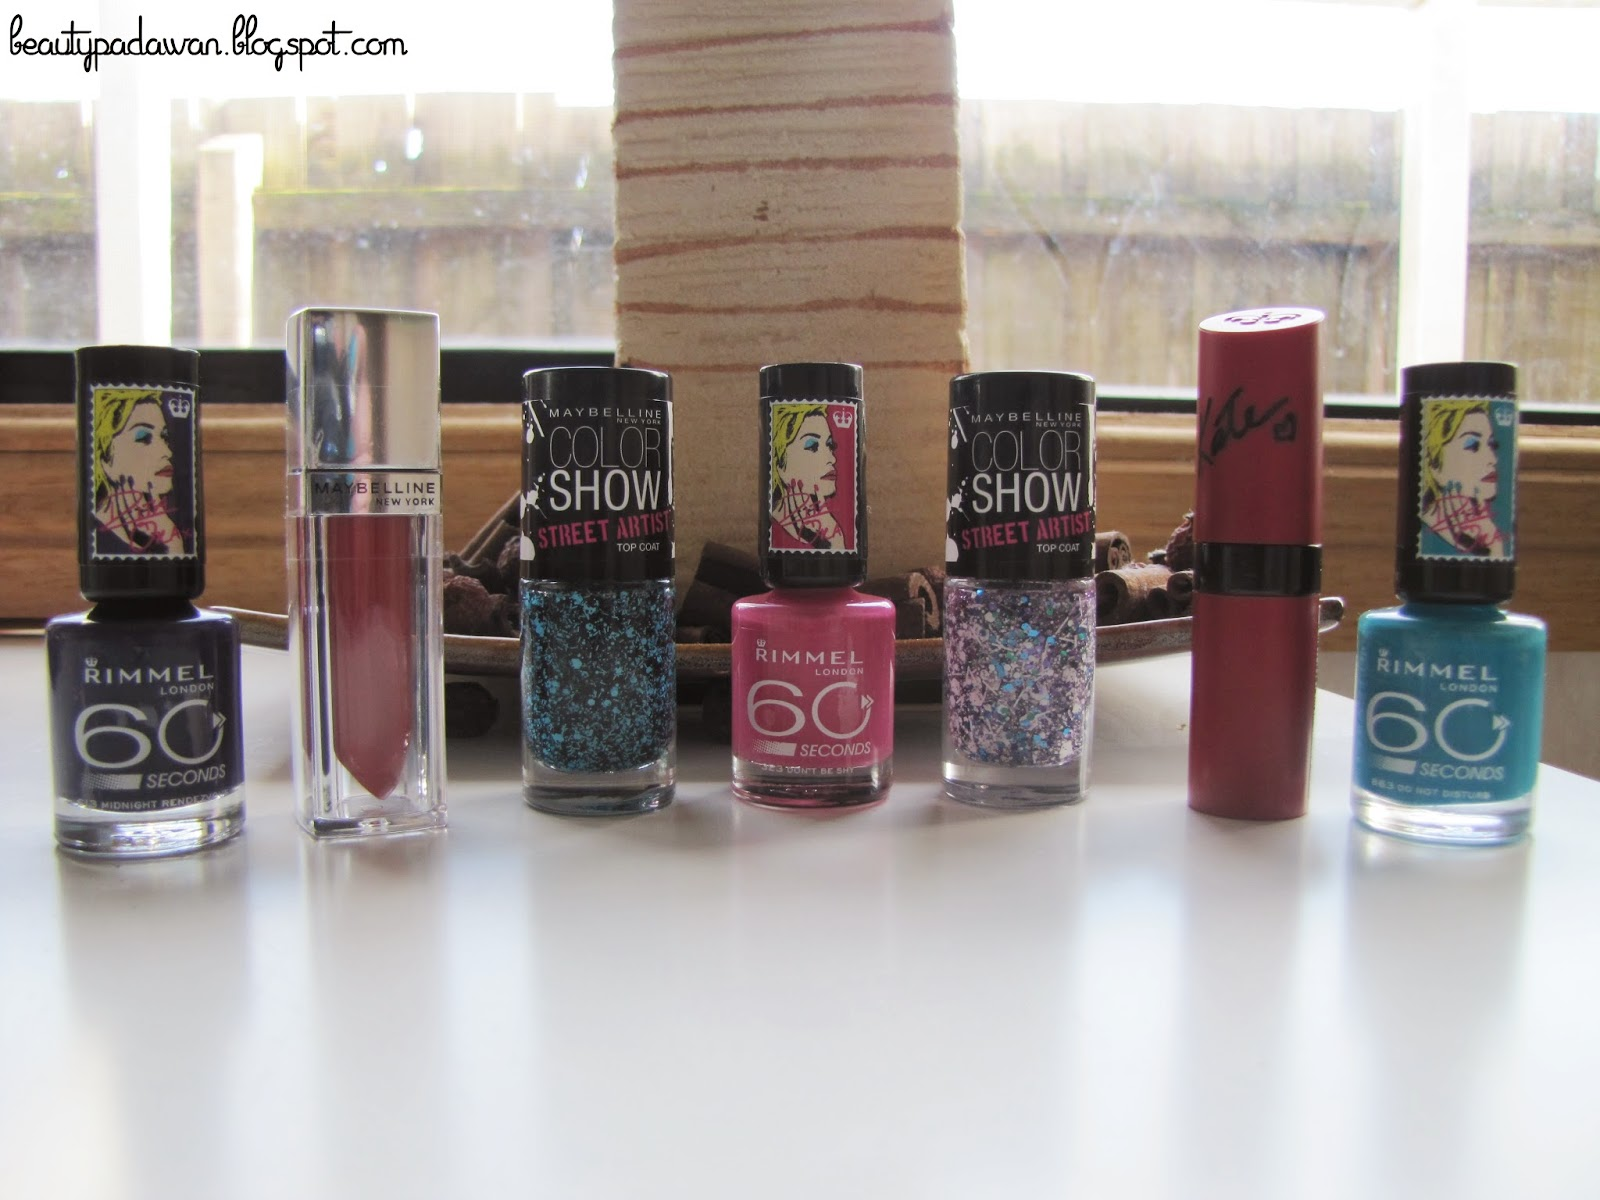 Rimmel London Rita Ora nail polishes, Maybelline Color Sensational The Elixir gloss, Maybelline Color Show nail polishes, Rimmel London Lasting Finish Matte by Kate lipstick